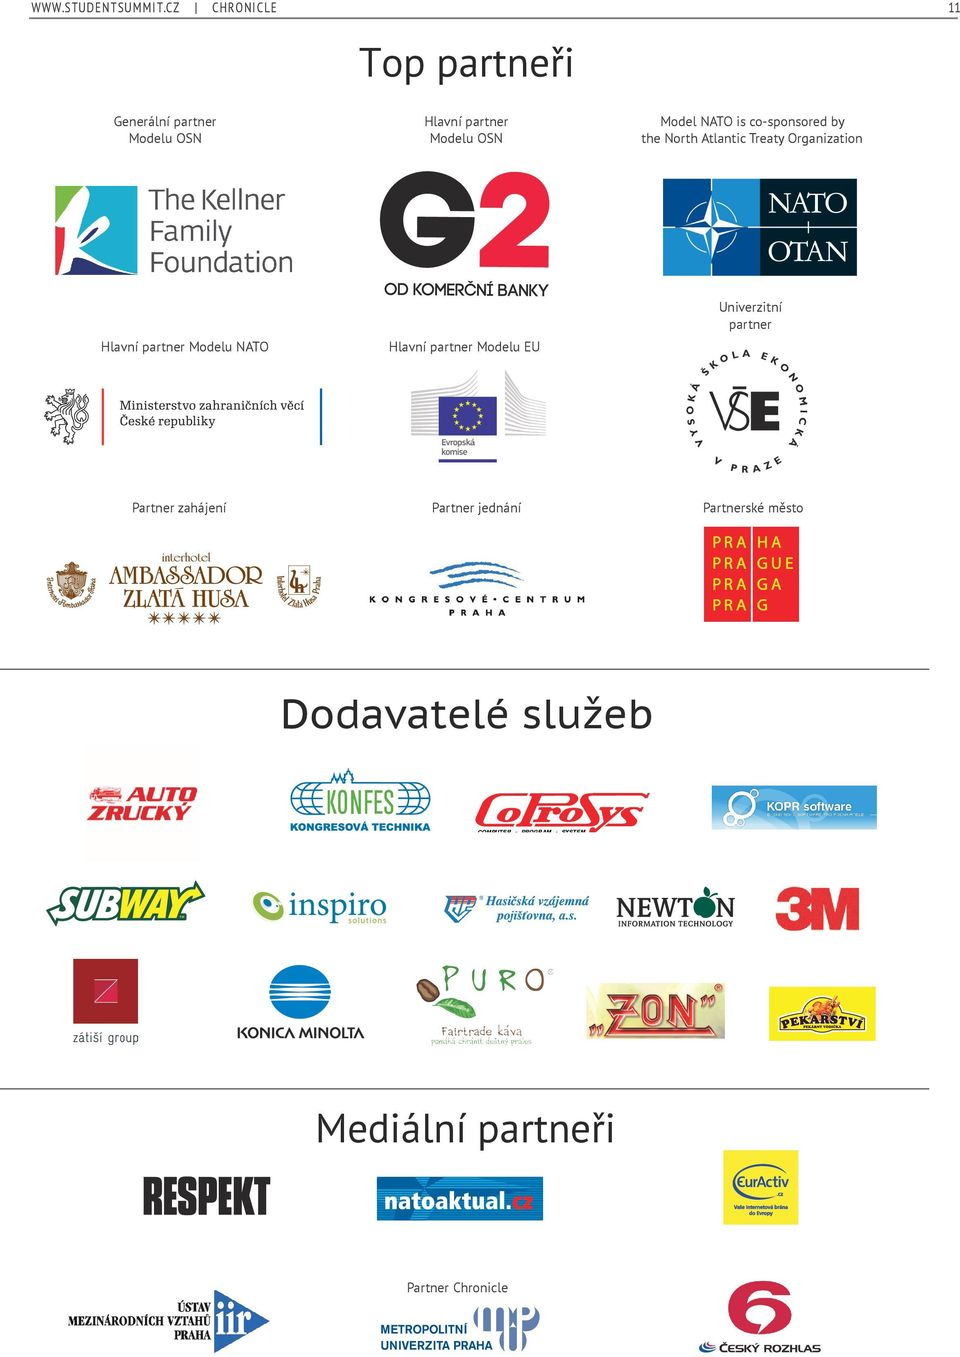 Hlavní partner Modelu NATO Partner zahájení Model NATO is co-sponsored by Model NATO is co-sponsored by the North Atlantic Treaty Organization the North Atlantic